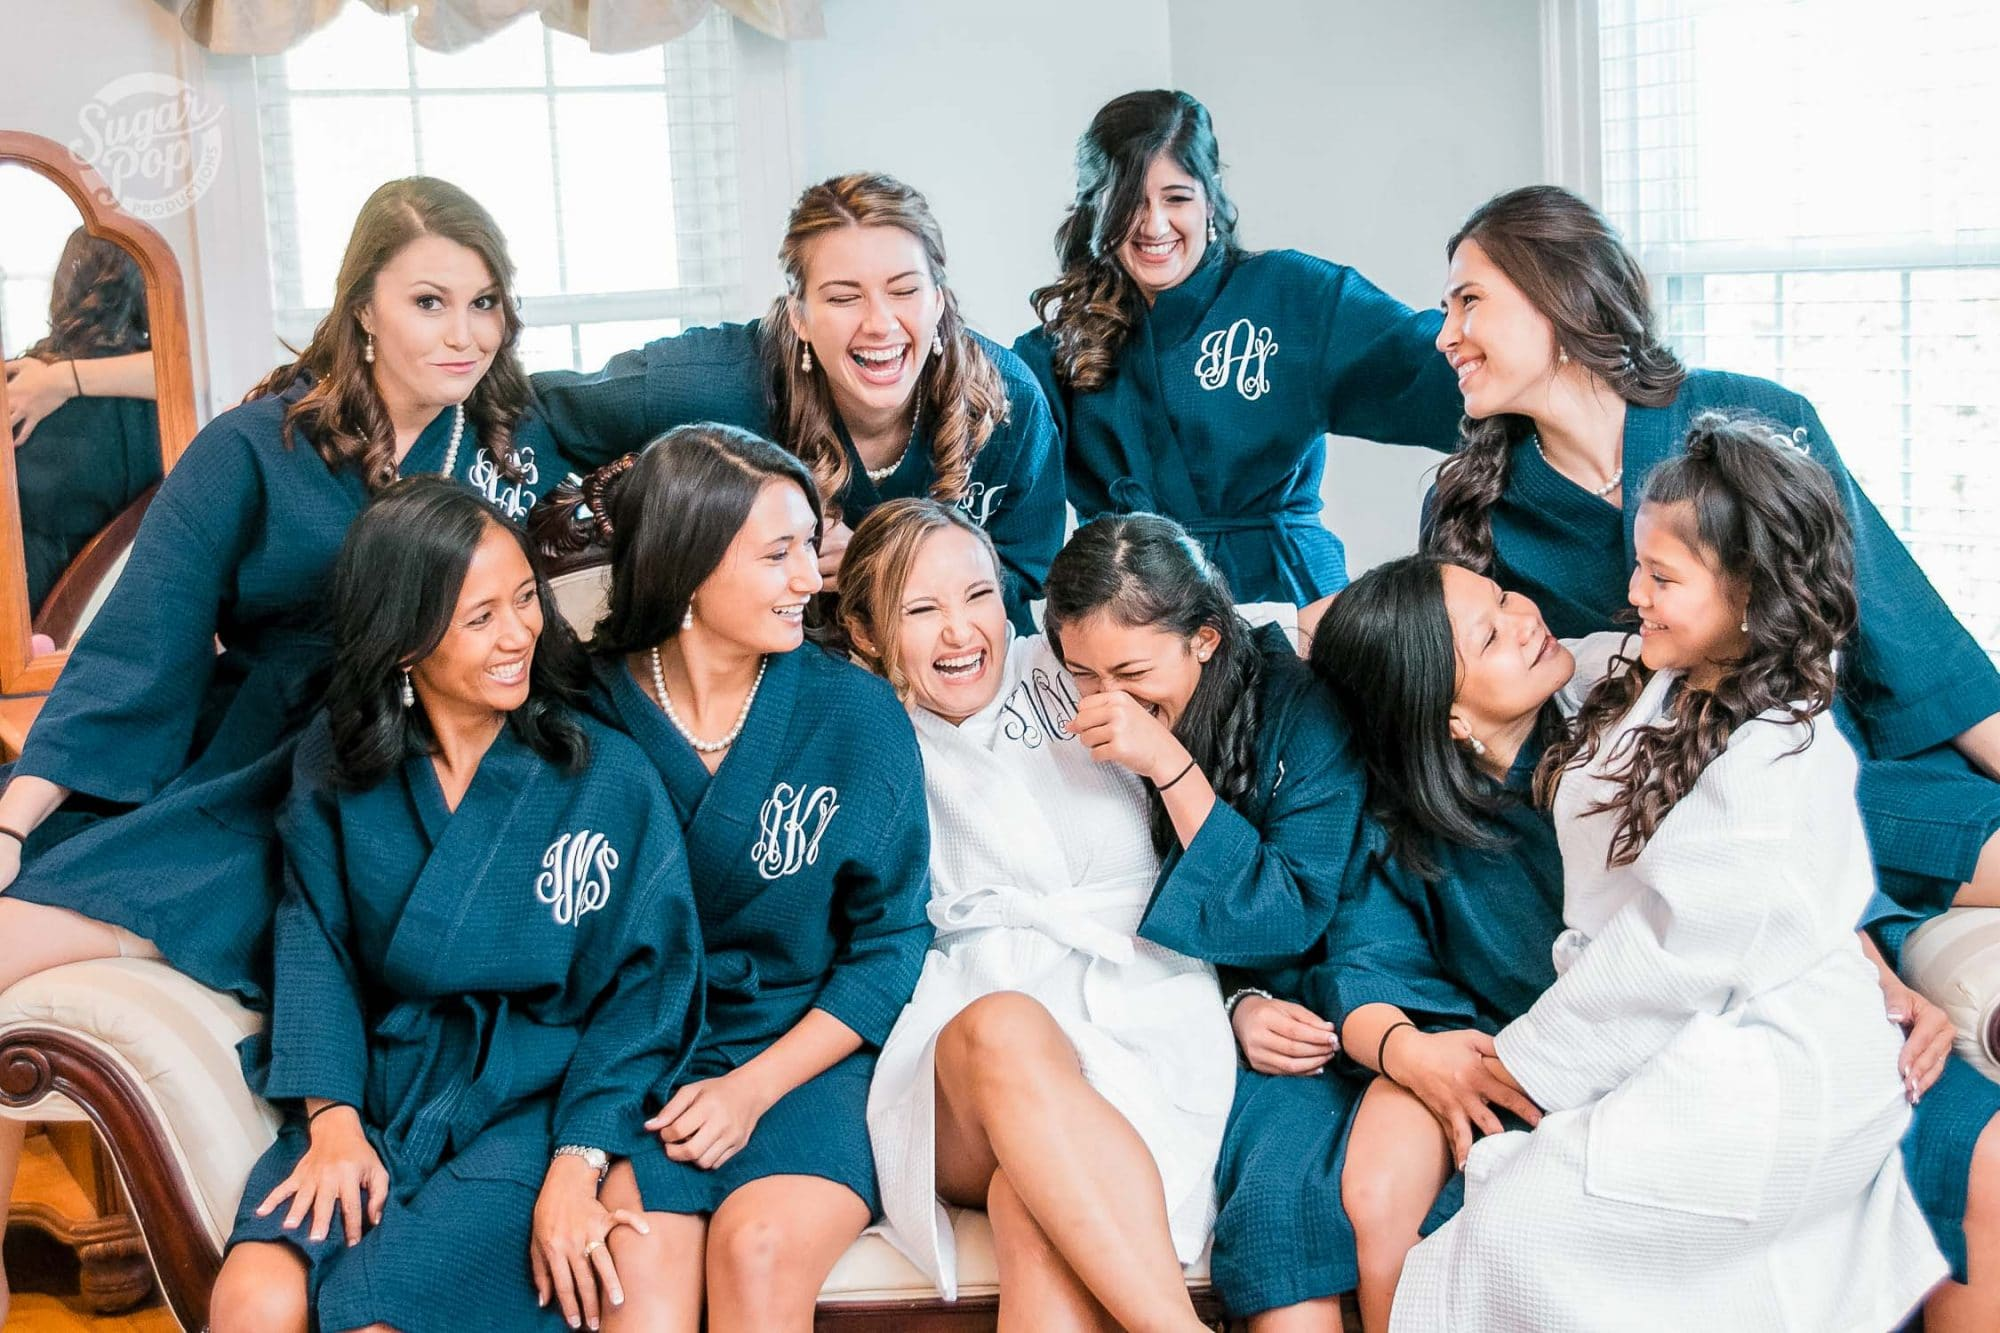 Sugar Pop Productions - bride and bridesmaids lounging on couch in matching robes